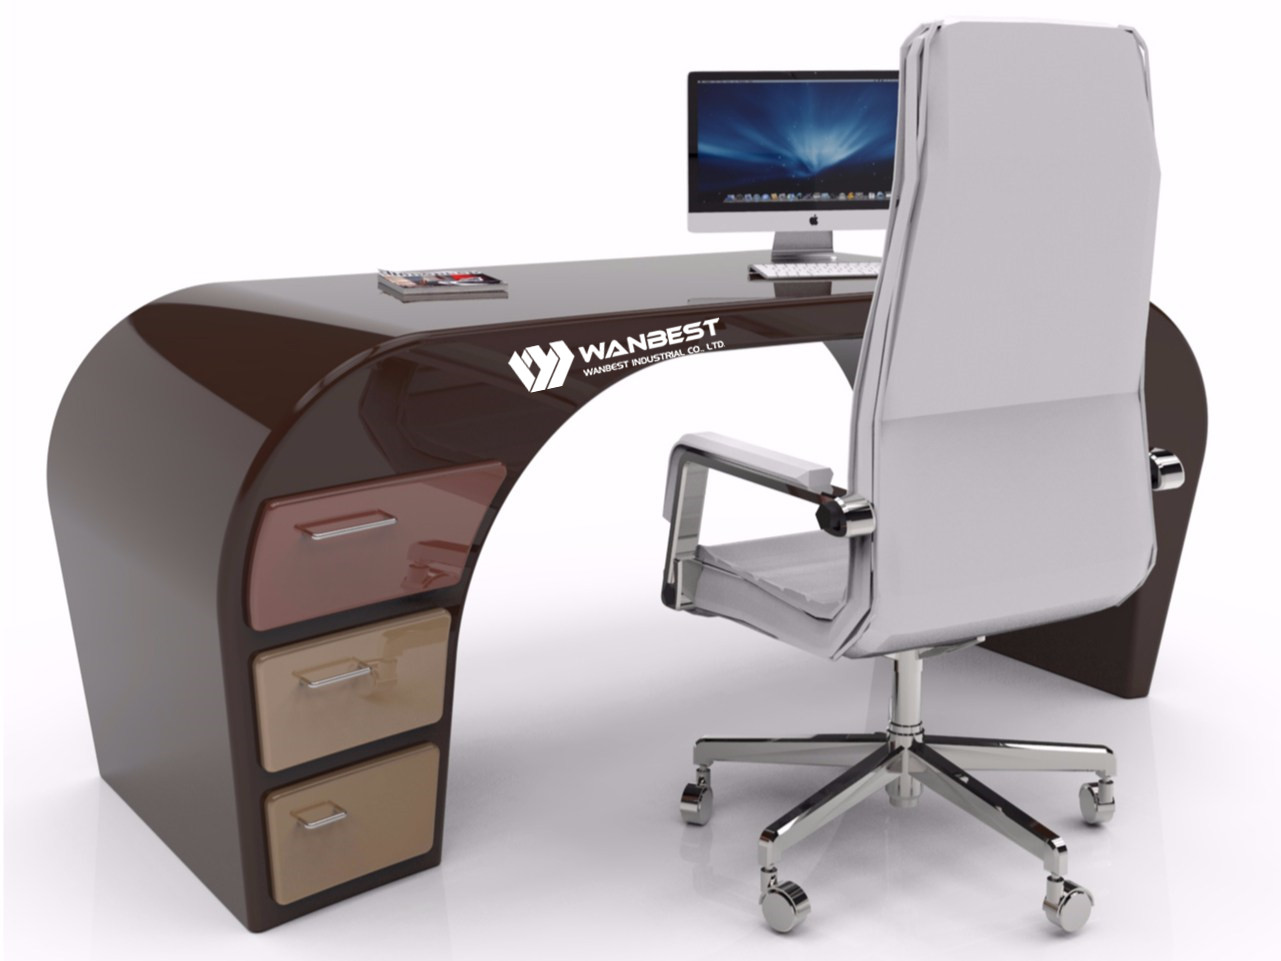 solid surface corian office desk.jpg